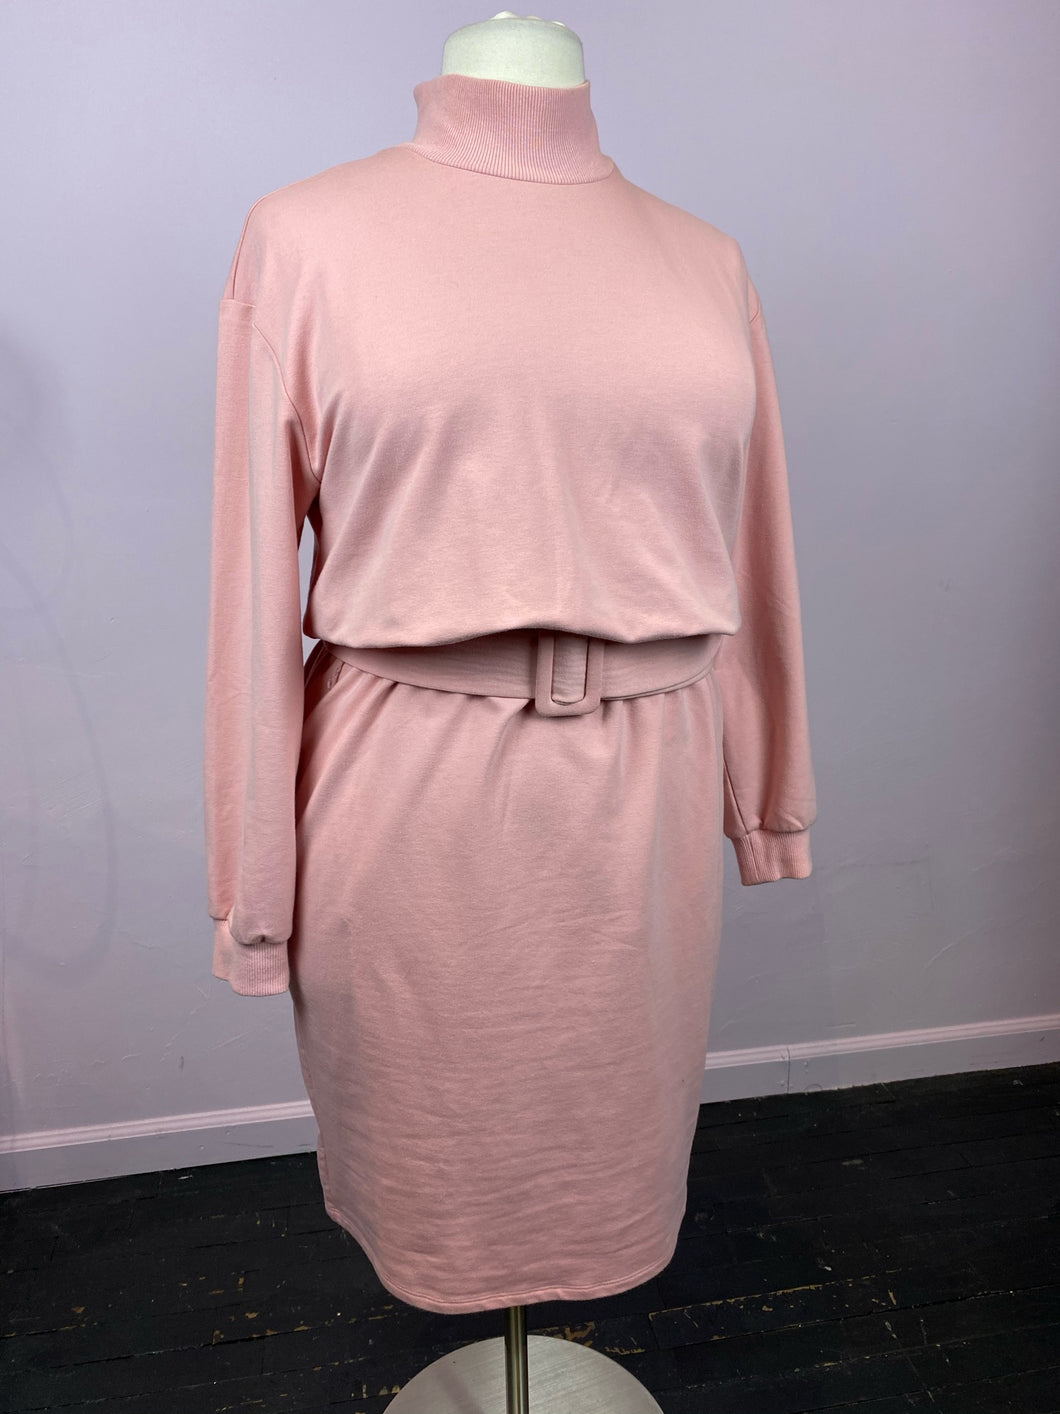 Blush Pink Turtleneck Sweater Dress with Belt by Eloquii, Size 16